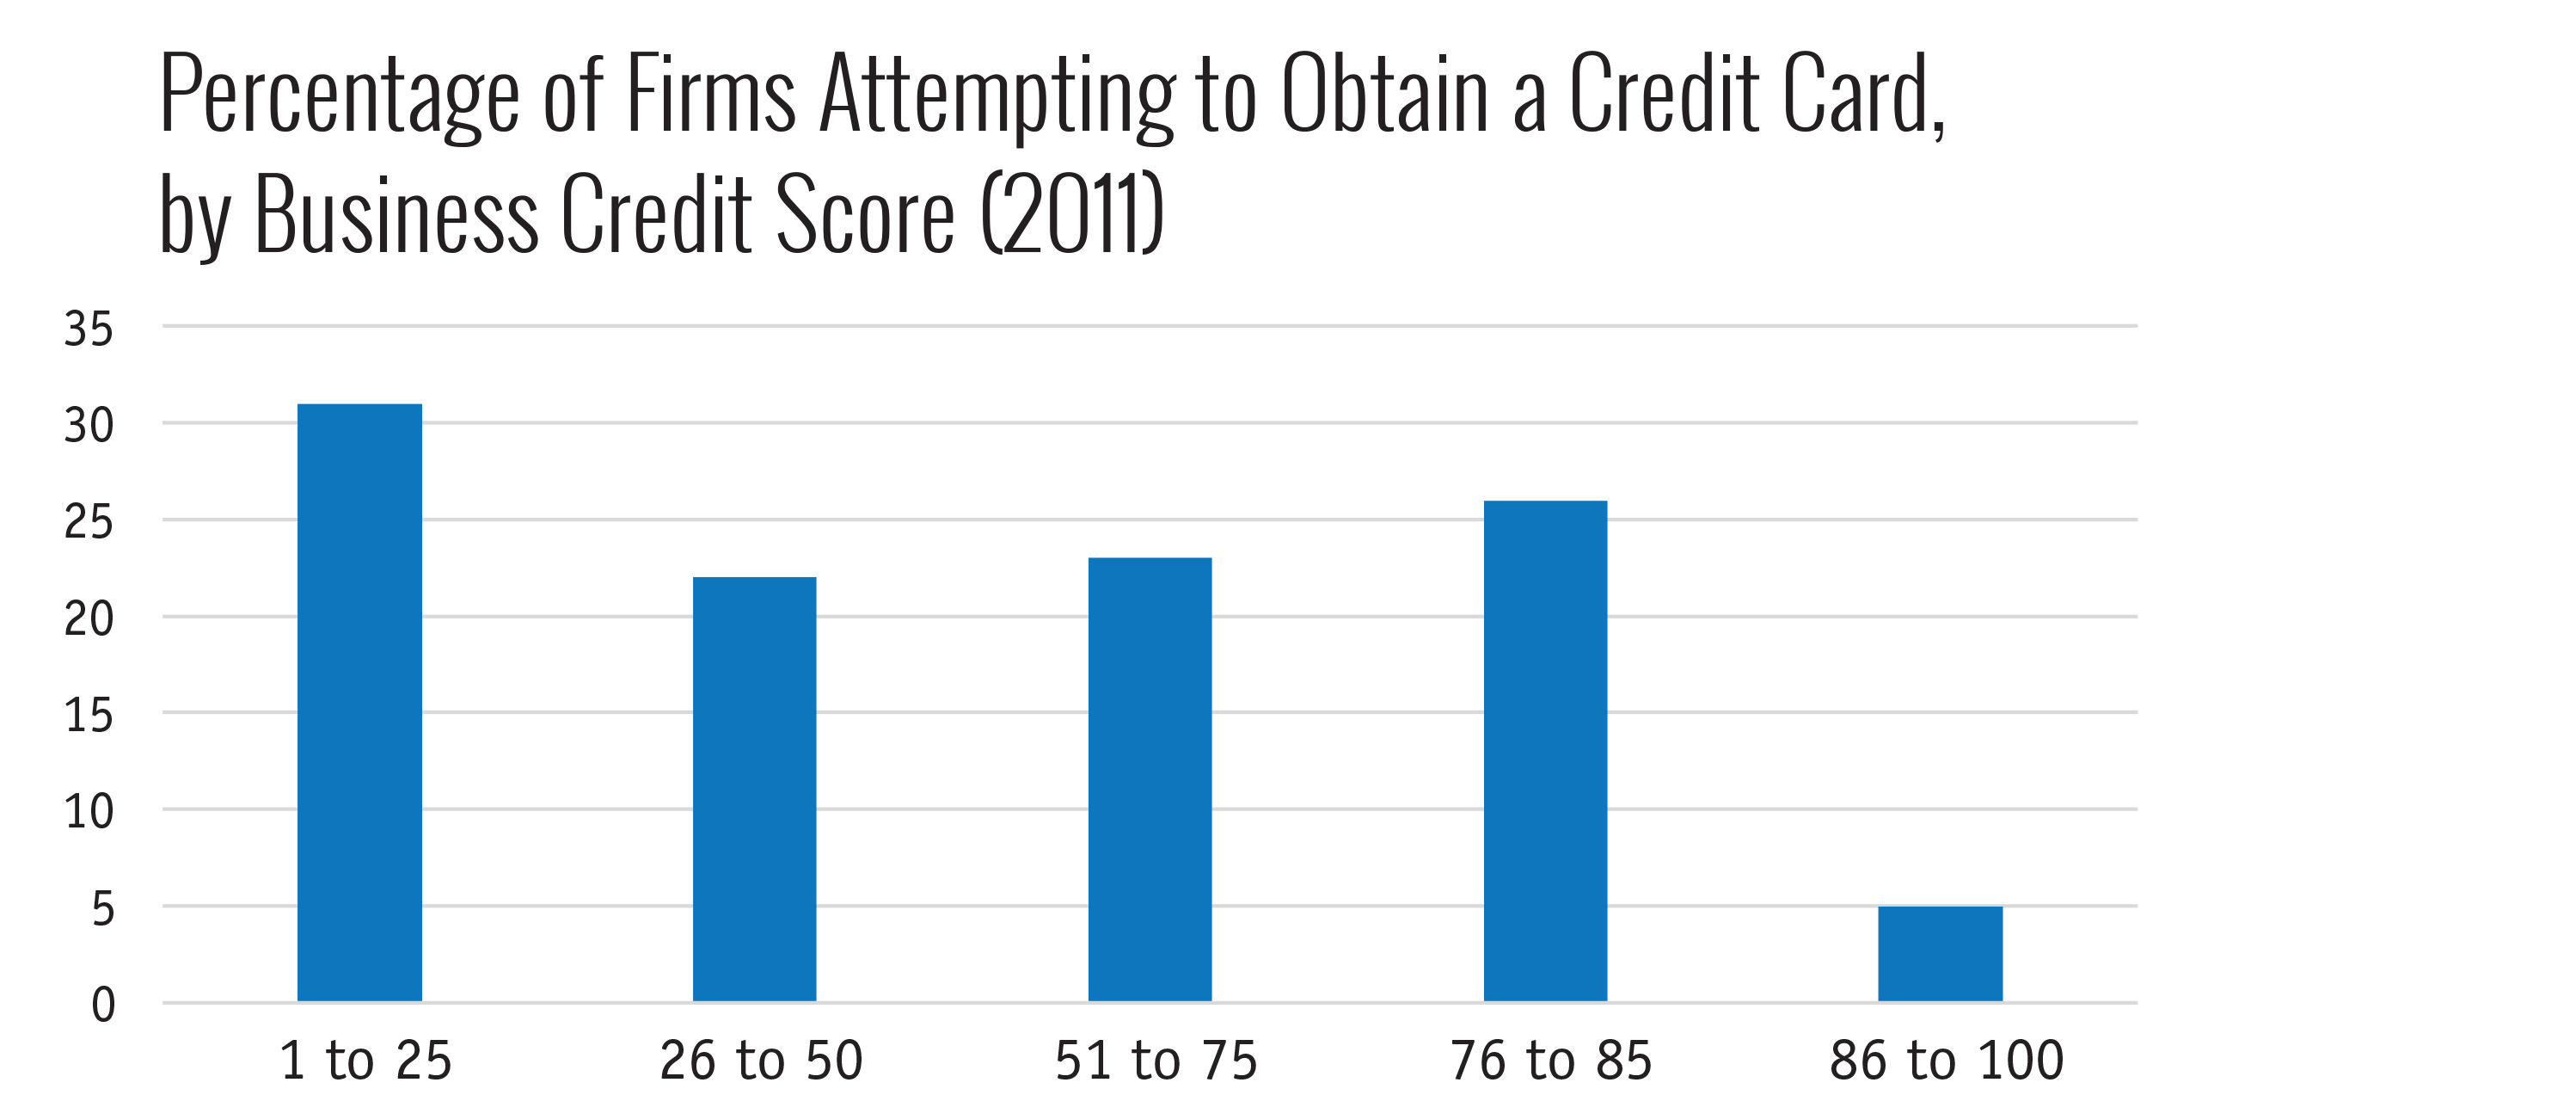 Percentage of Firms Attempting to Obtain a Credit Card, by Business Credit Score (2011)